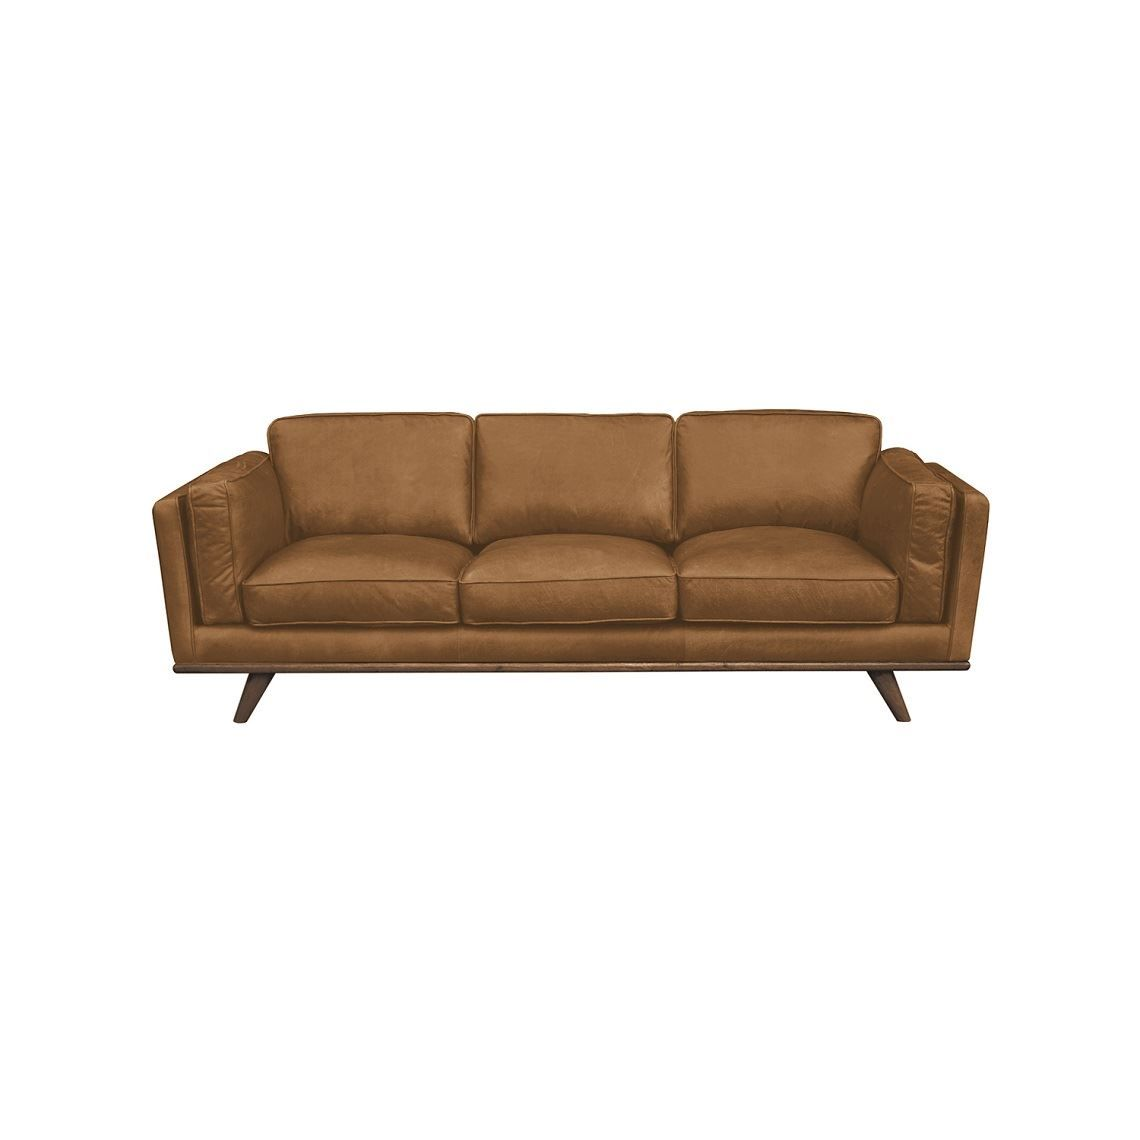 Dahlia 3 Seat Leather Sofa Dahlia 3 Seat Leather Sofa Products Leather Sofa Sofa